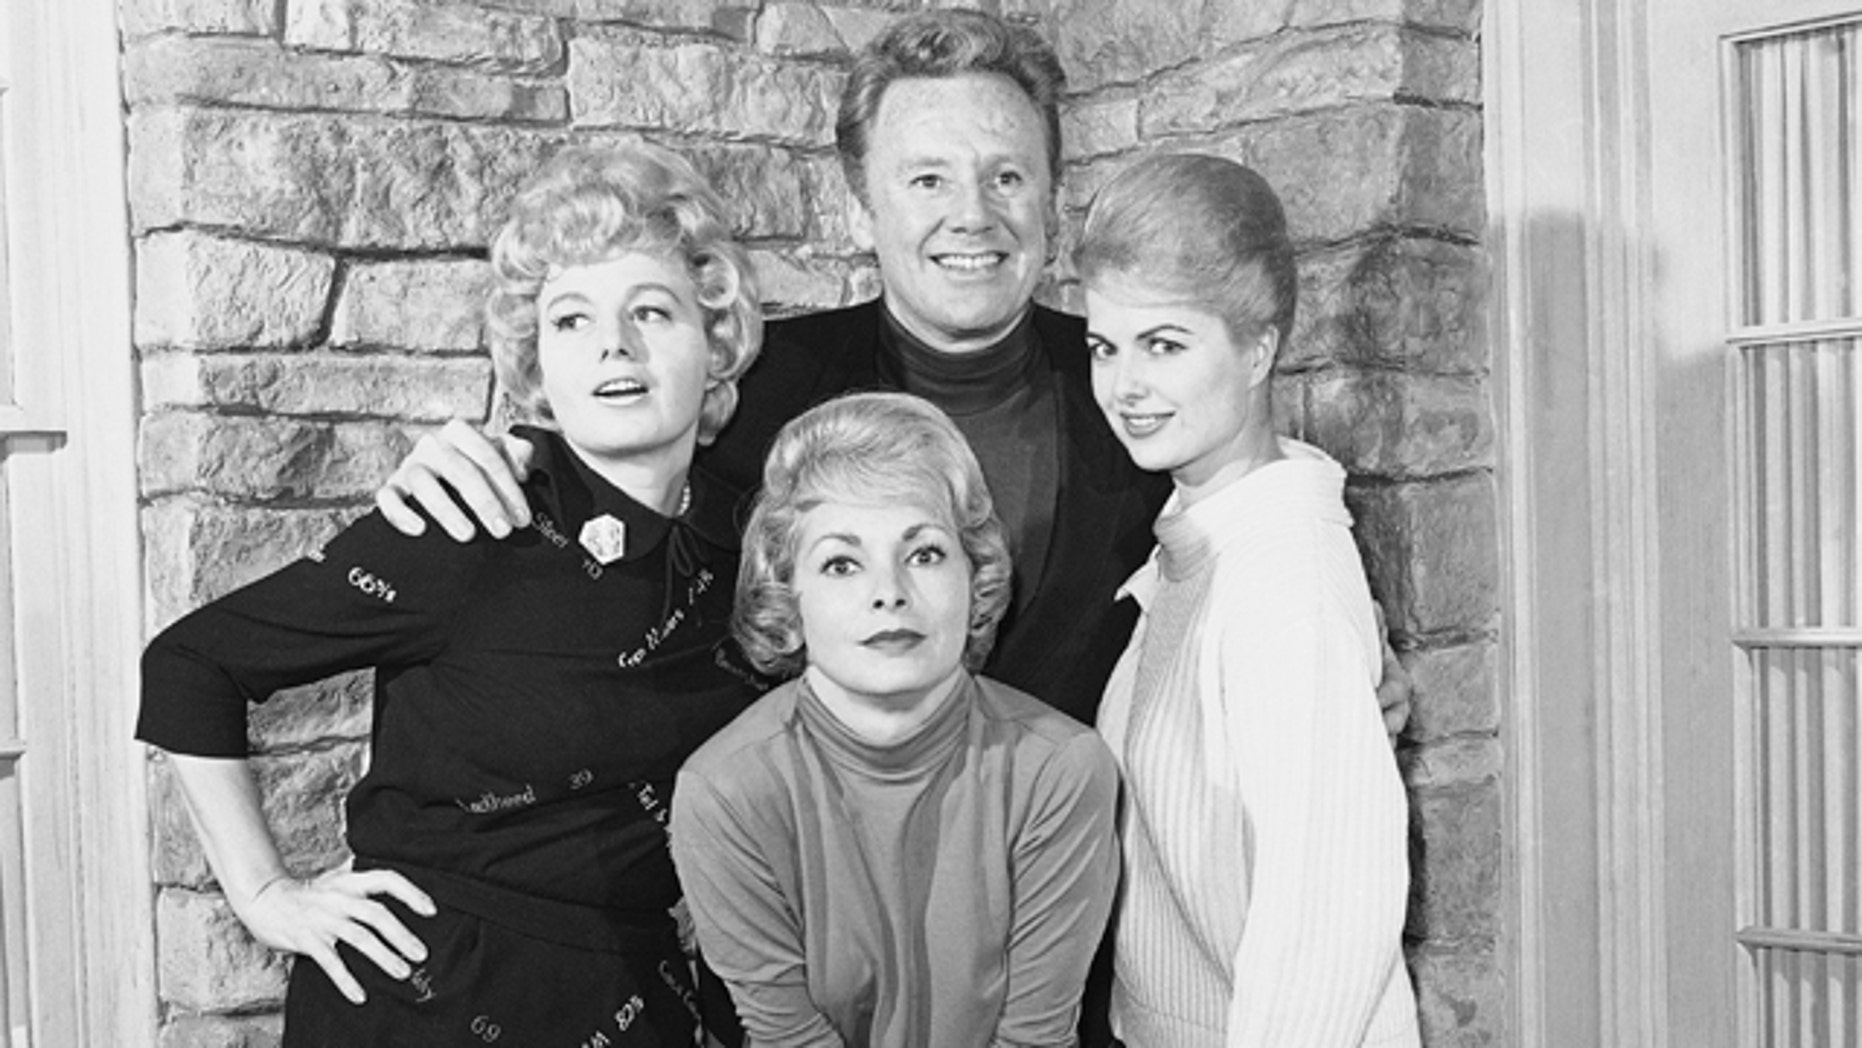 FILE - In this Feb. 9, 1963 file photo, actors Van Johnson, top center, Shelly Winters, from left, Janet Leigh, and Martha Hyer pose for a photo. (AP Photo/Don Brinn, file)